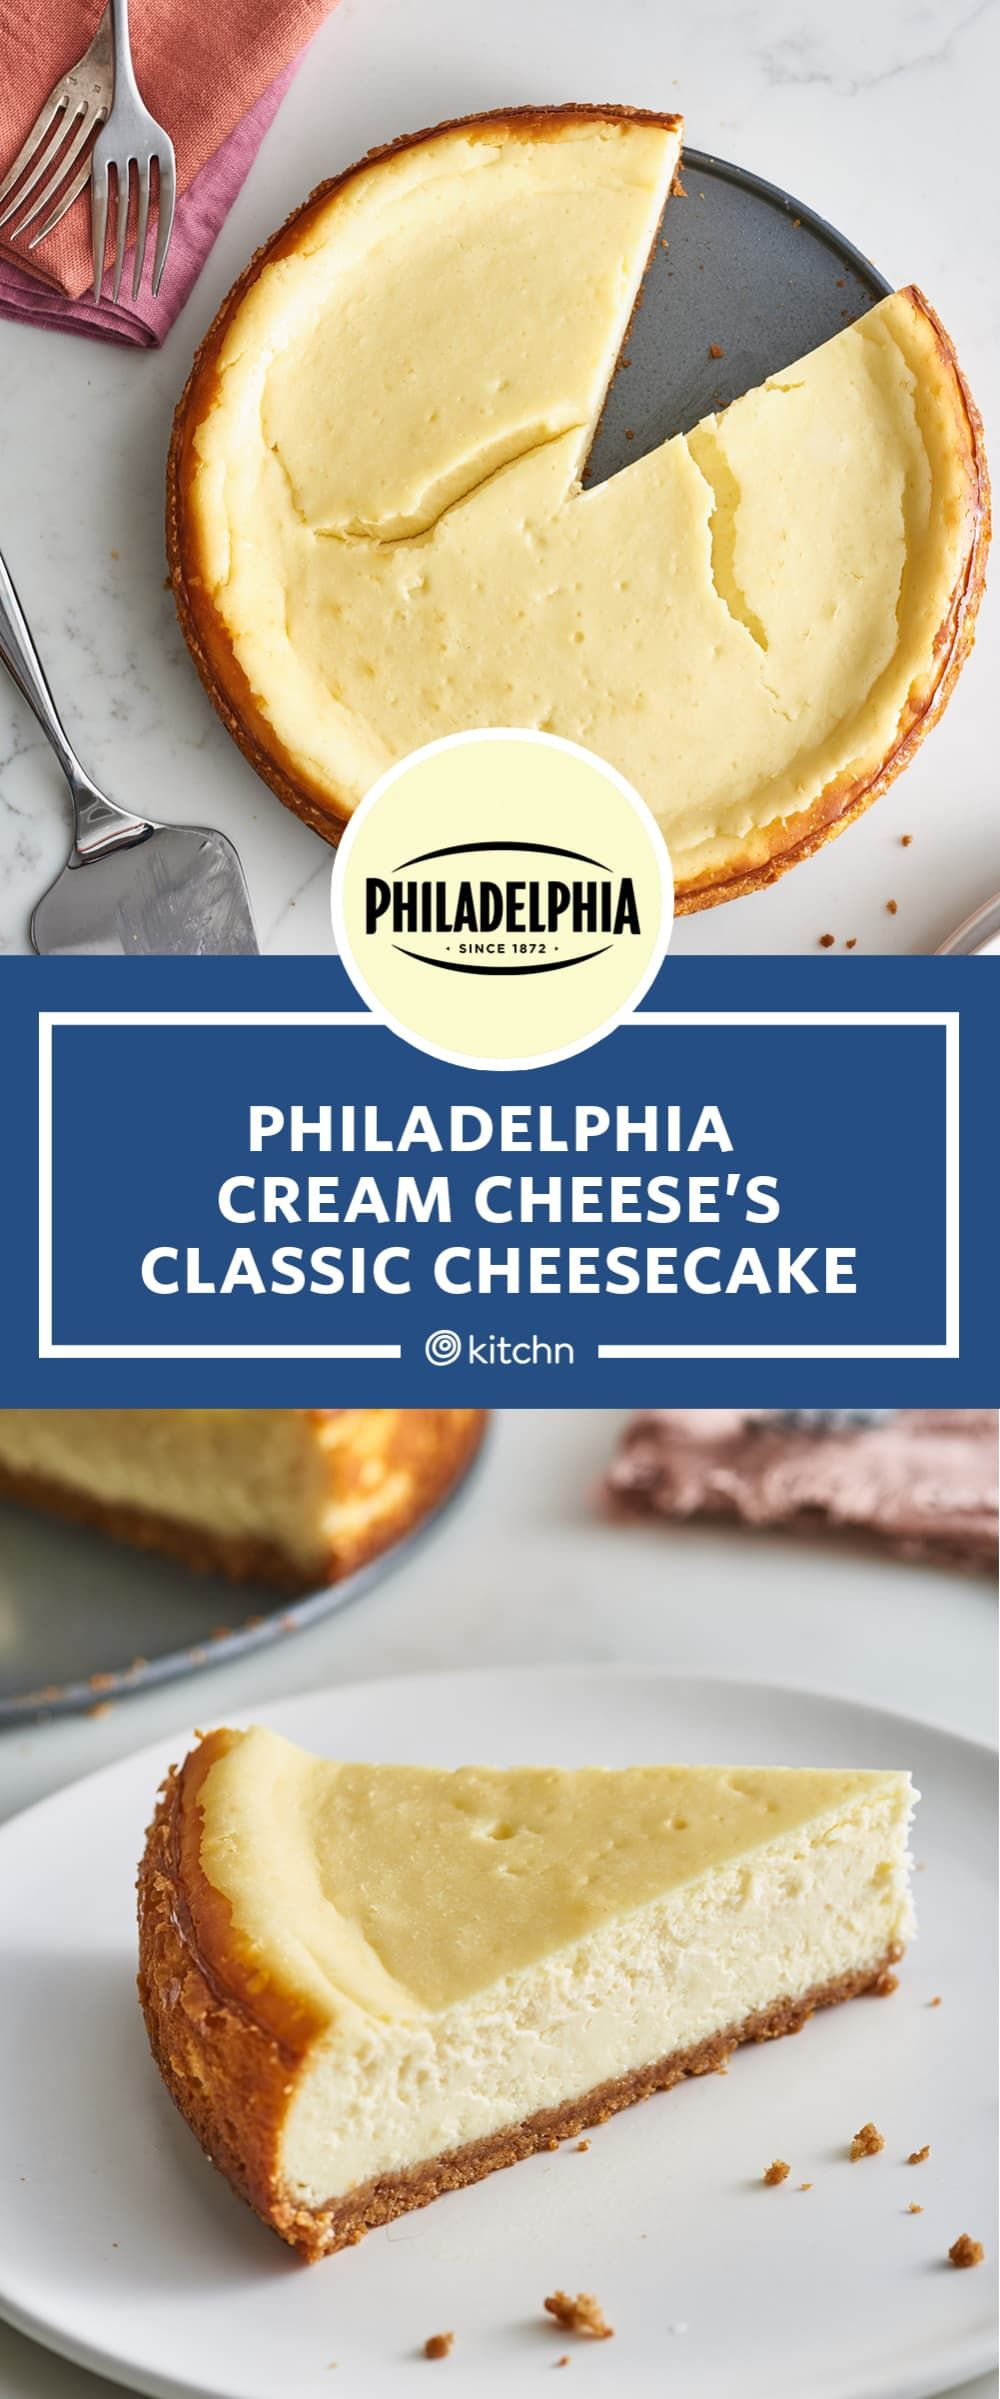 Photo of The Classic Philadelphia Cheesecake Recipe Is as Easy as It Gets. But Is It Too Good to Be True?